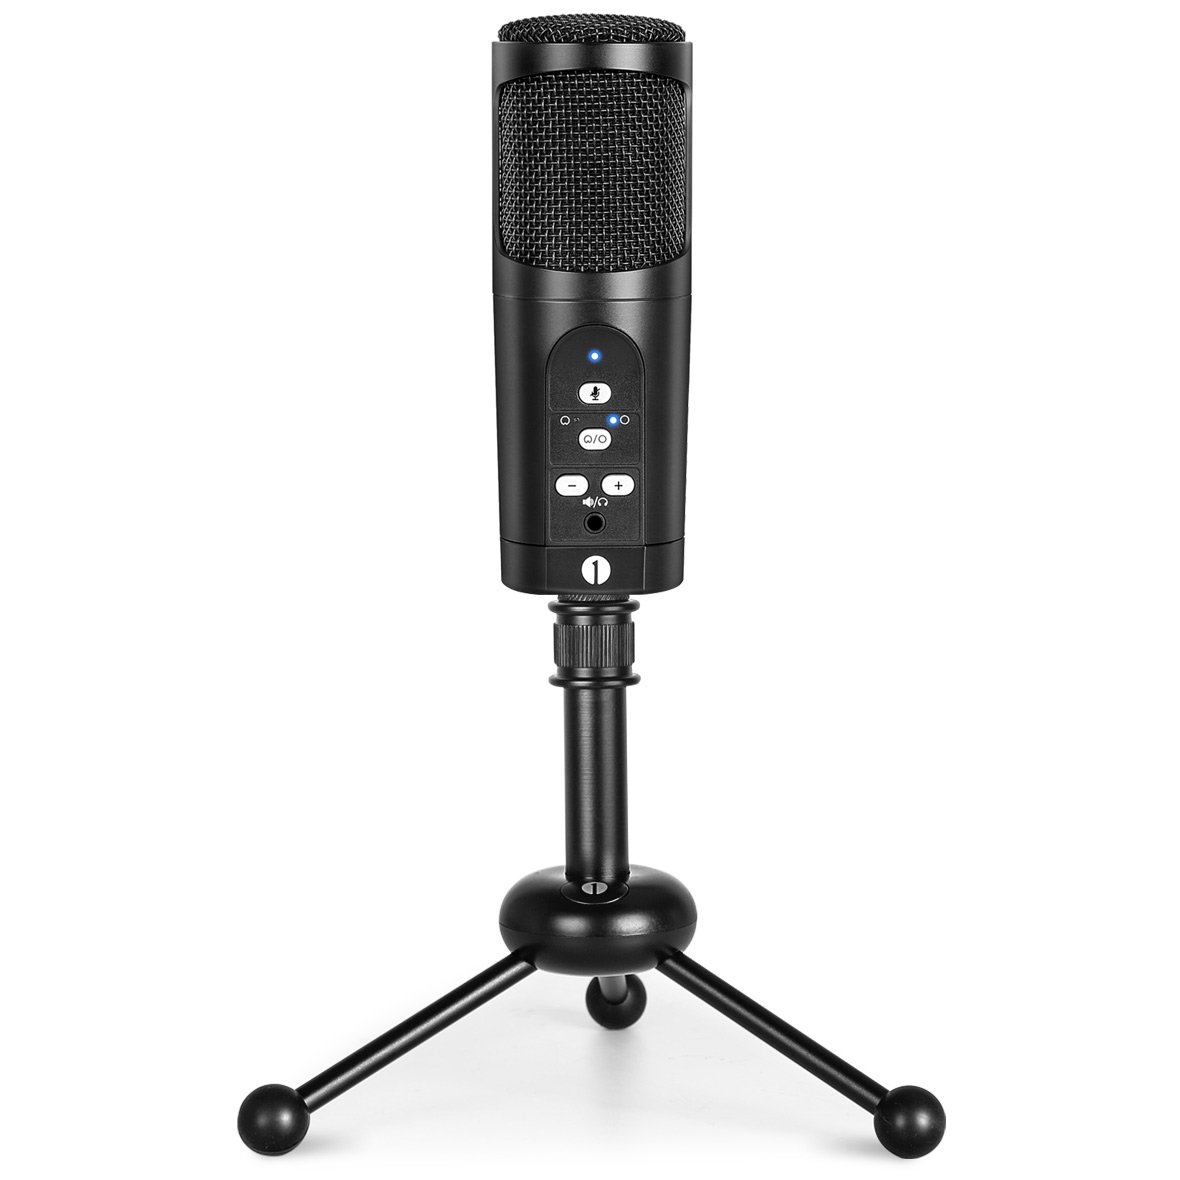 1byone USB Microphone with tripod, Mute Button, LED indicator, audio out volume up/down control, compatible with Windows/MacOS/Linux, Cardioid or Omni-directional Condenser USB Microphone